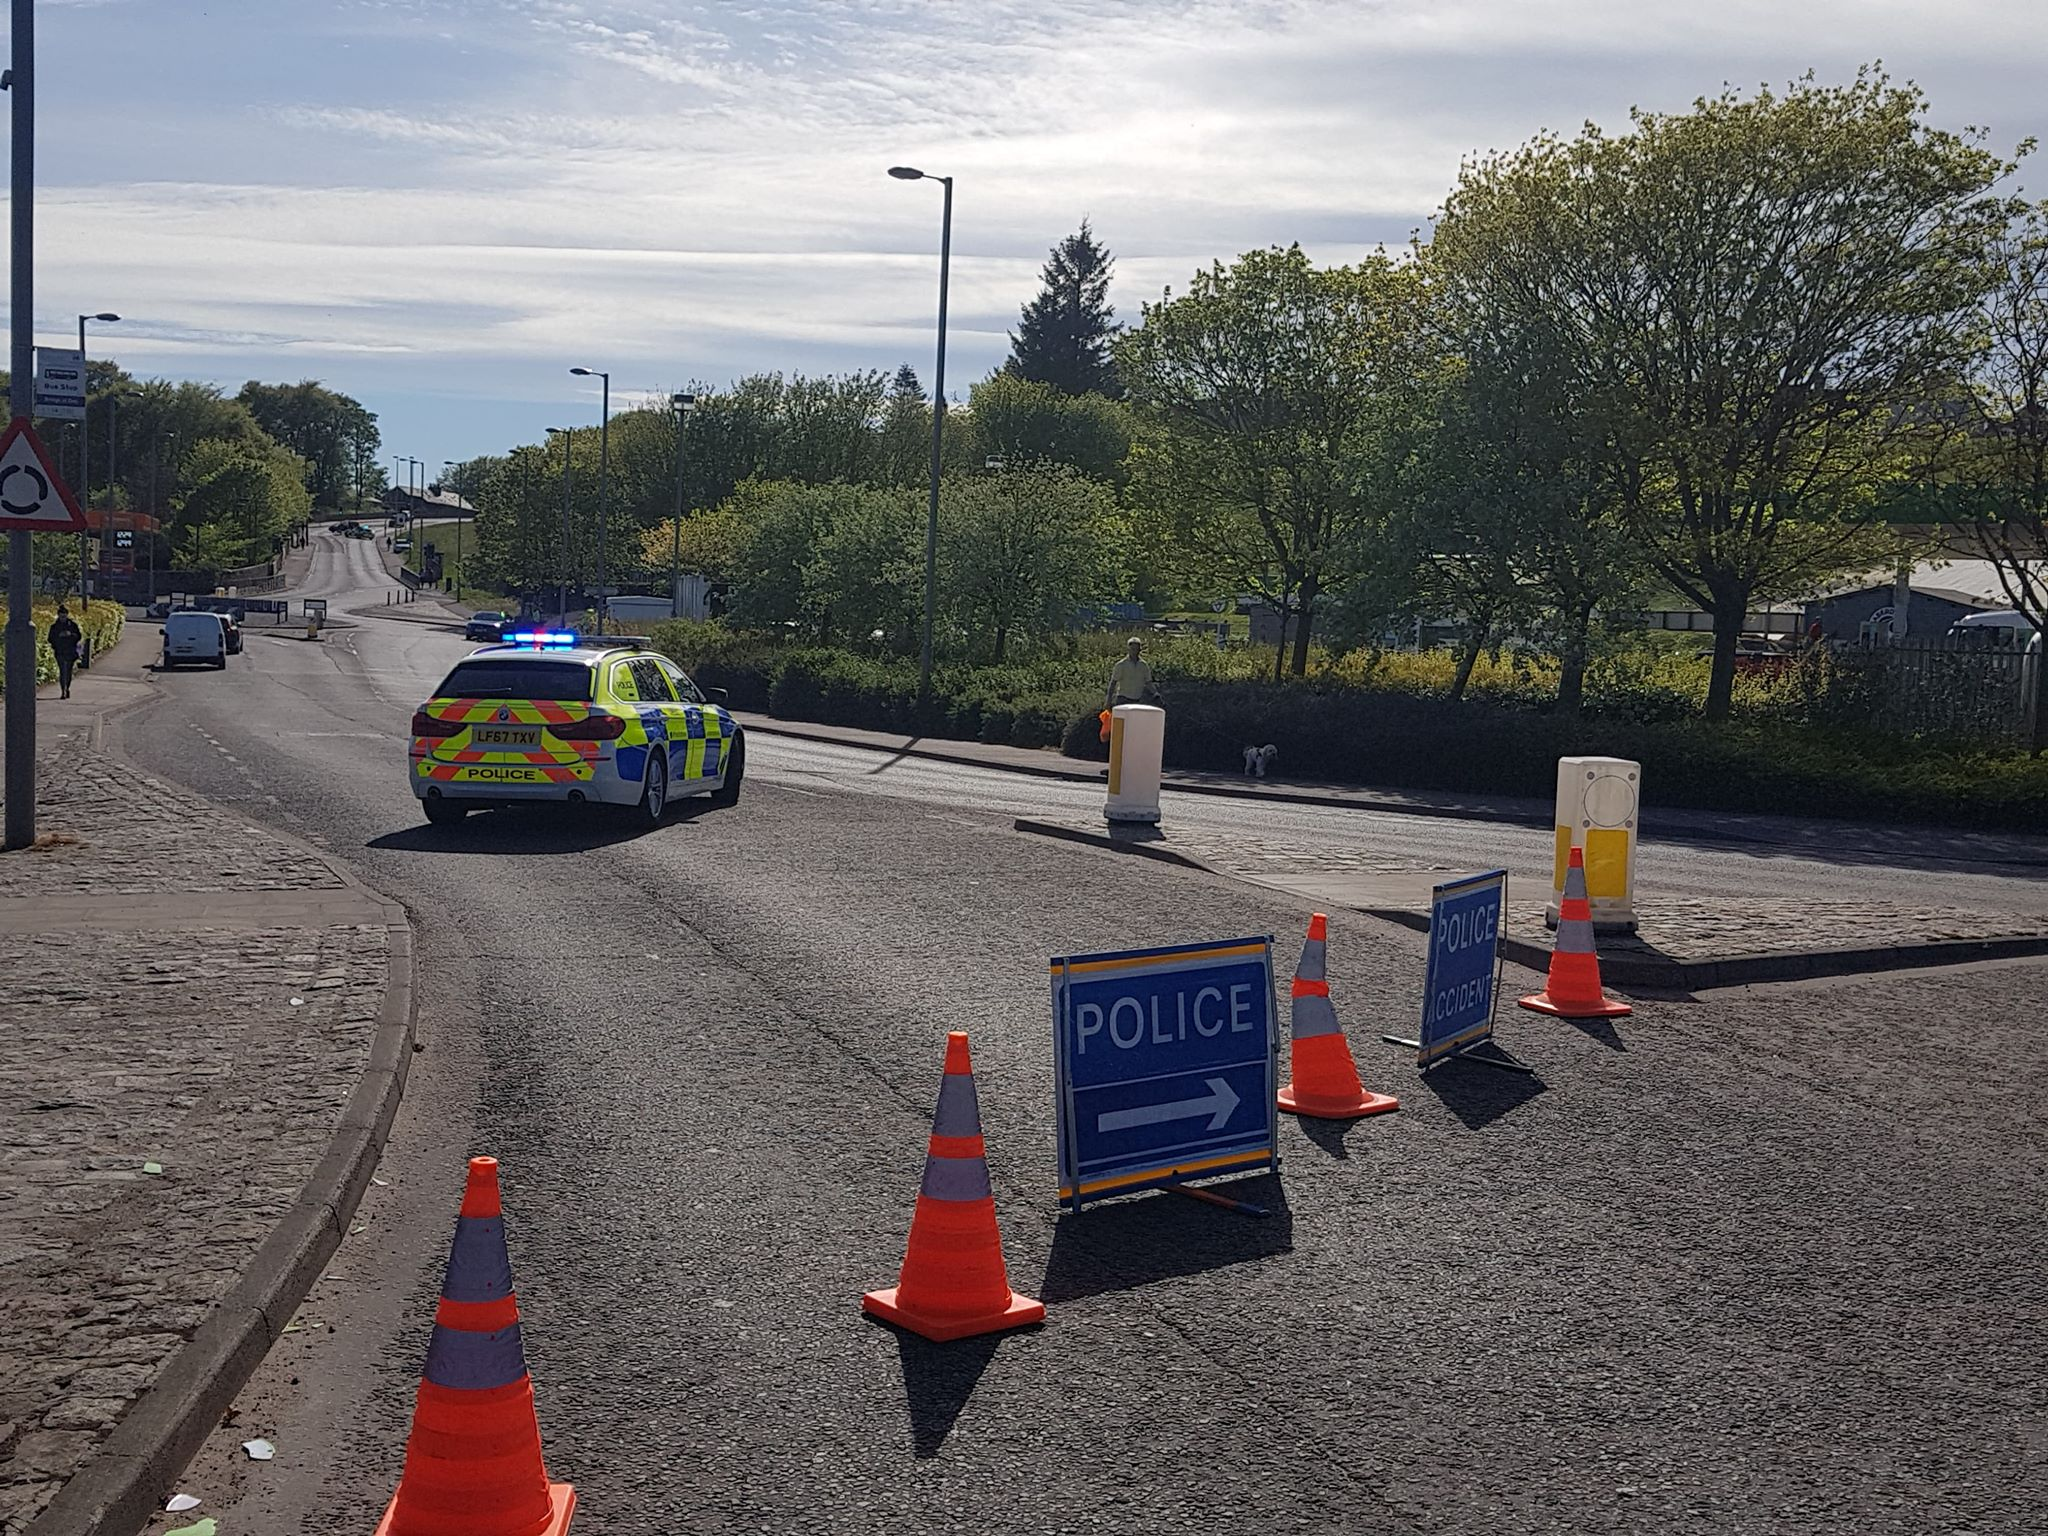 Police at the scene on Garthdee Road